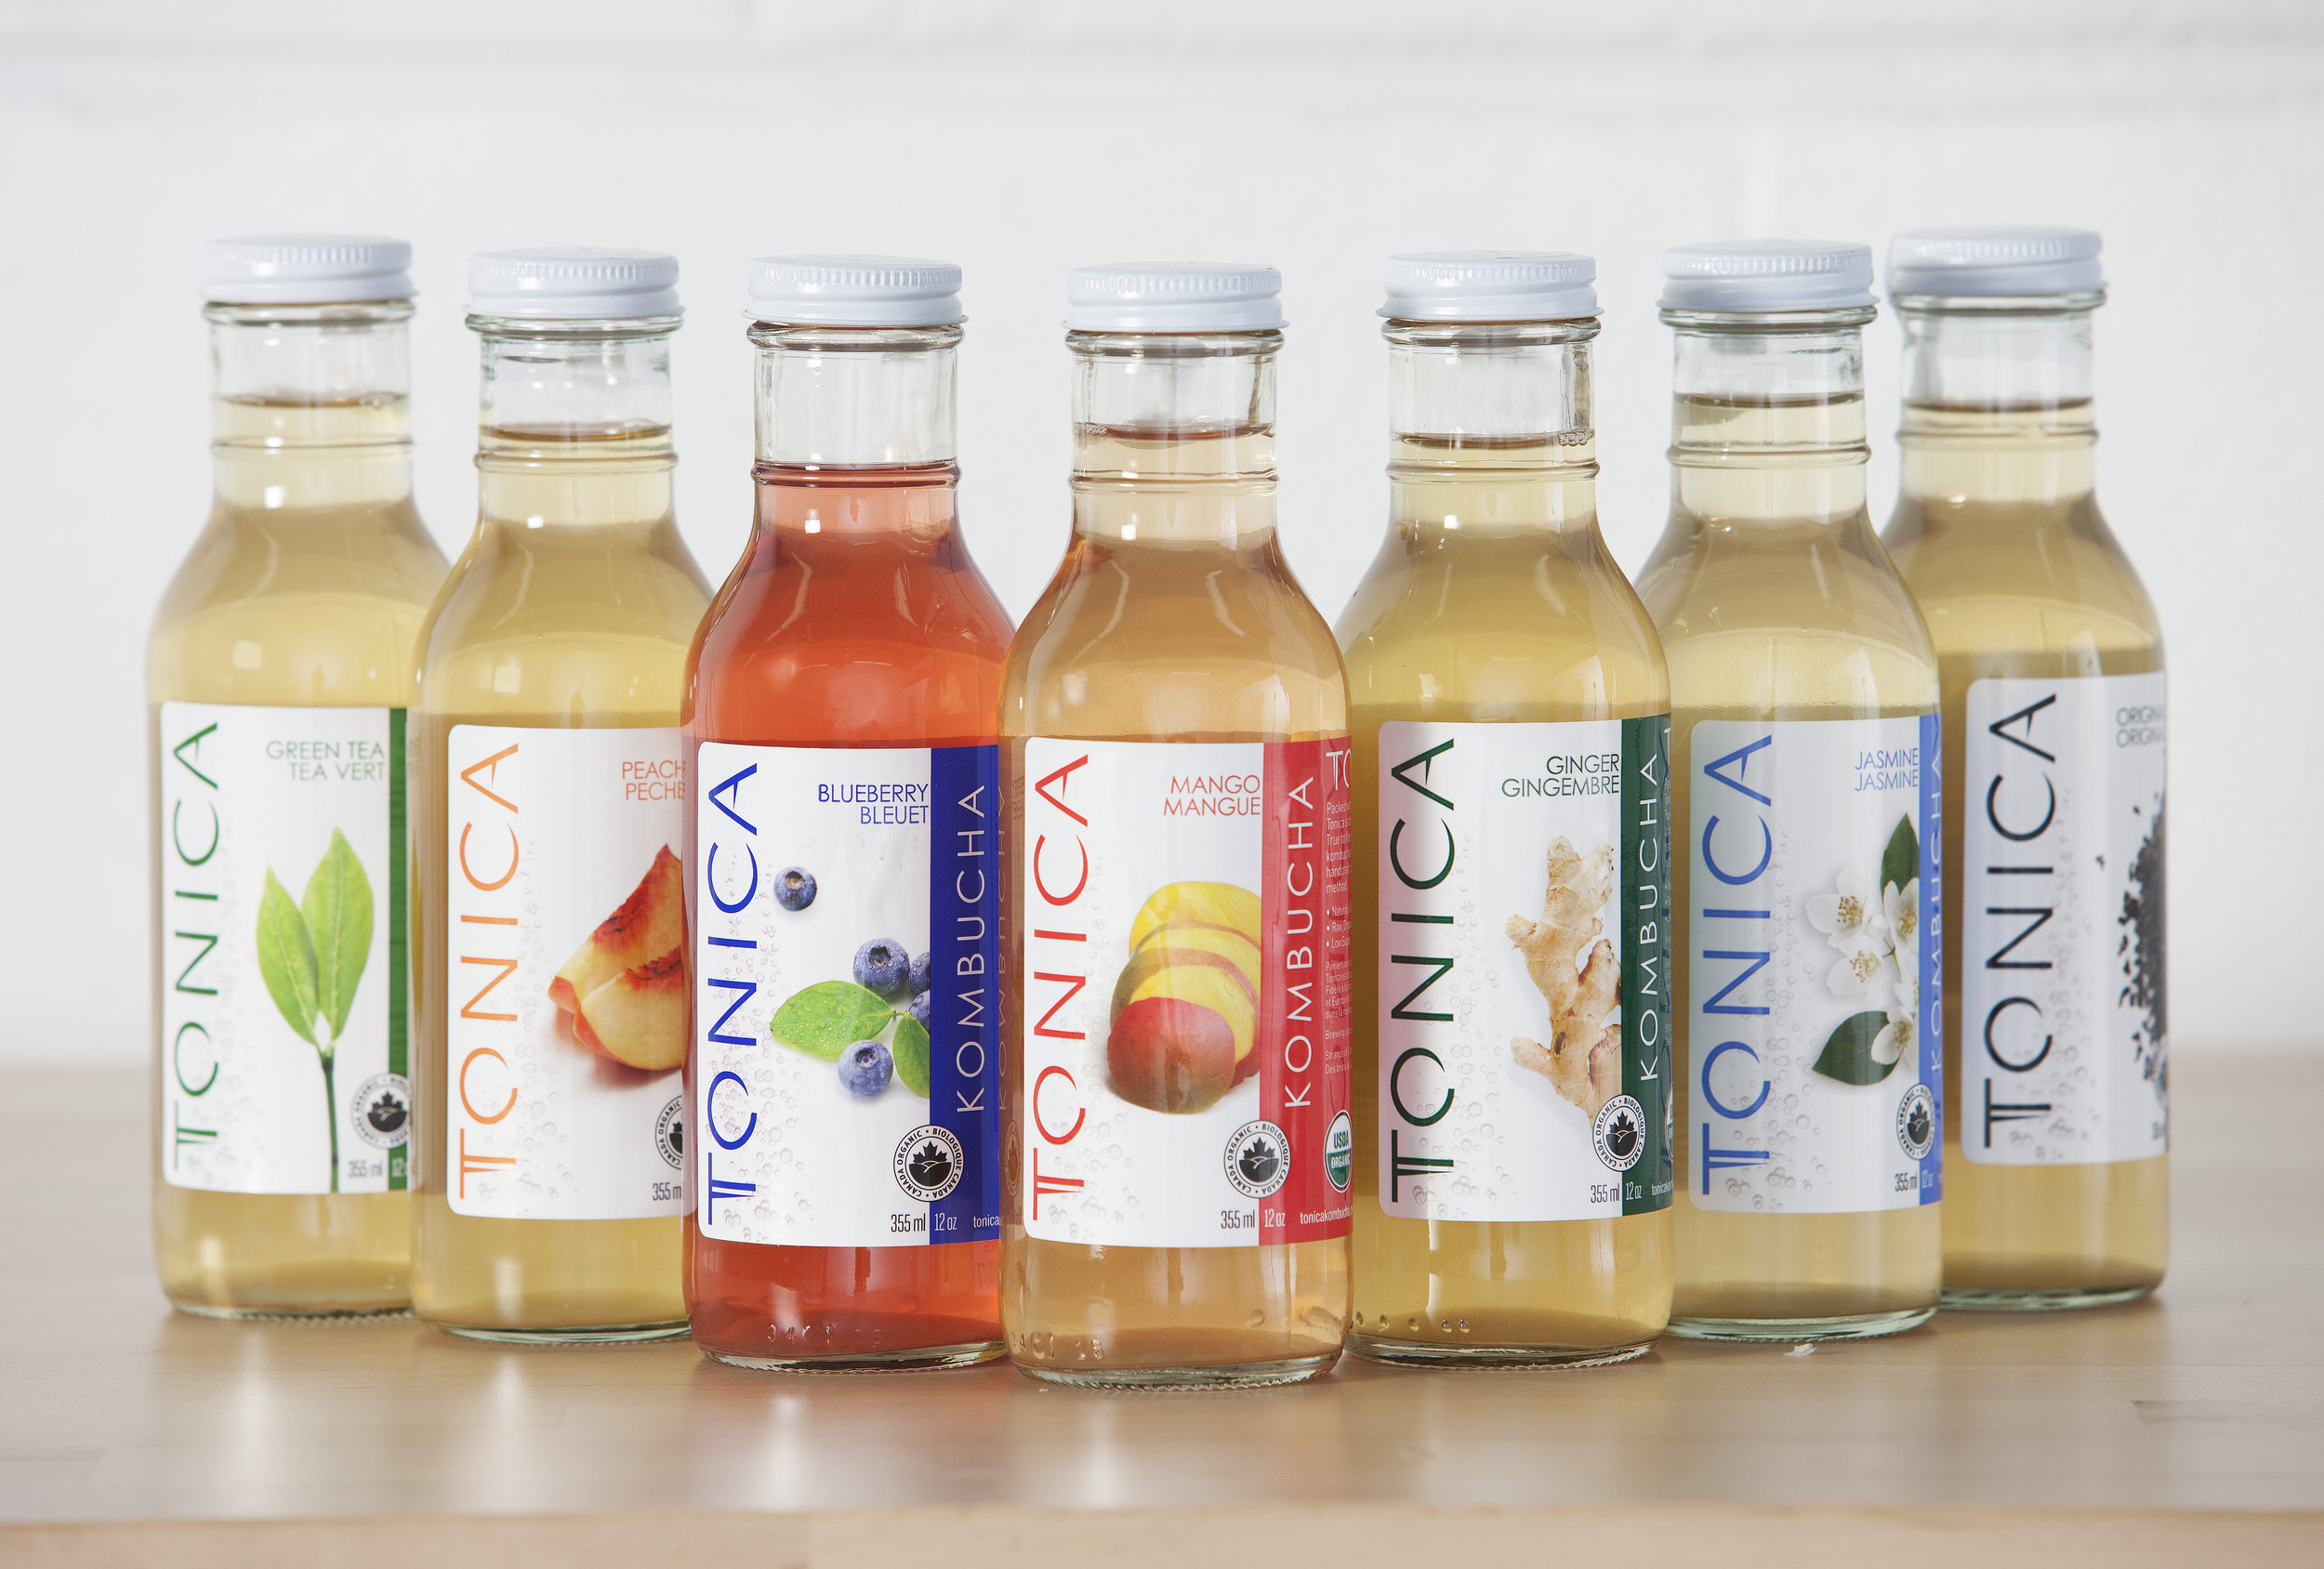 Tonica Kombucha   Tea is brewed and bottled in Toronto, Canada with all natural, raw, certified organic ingredients.